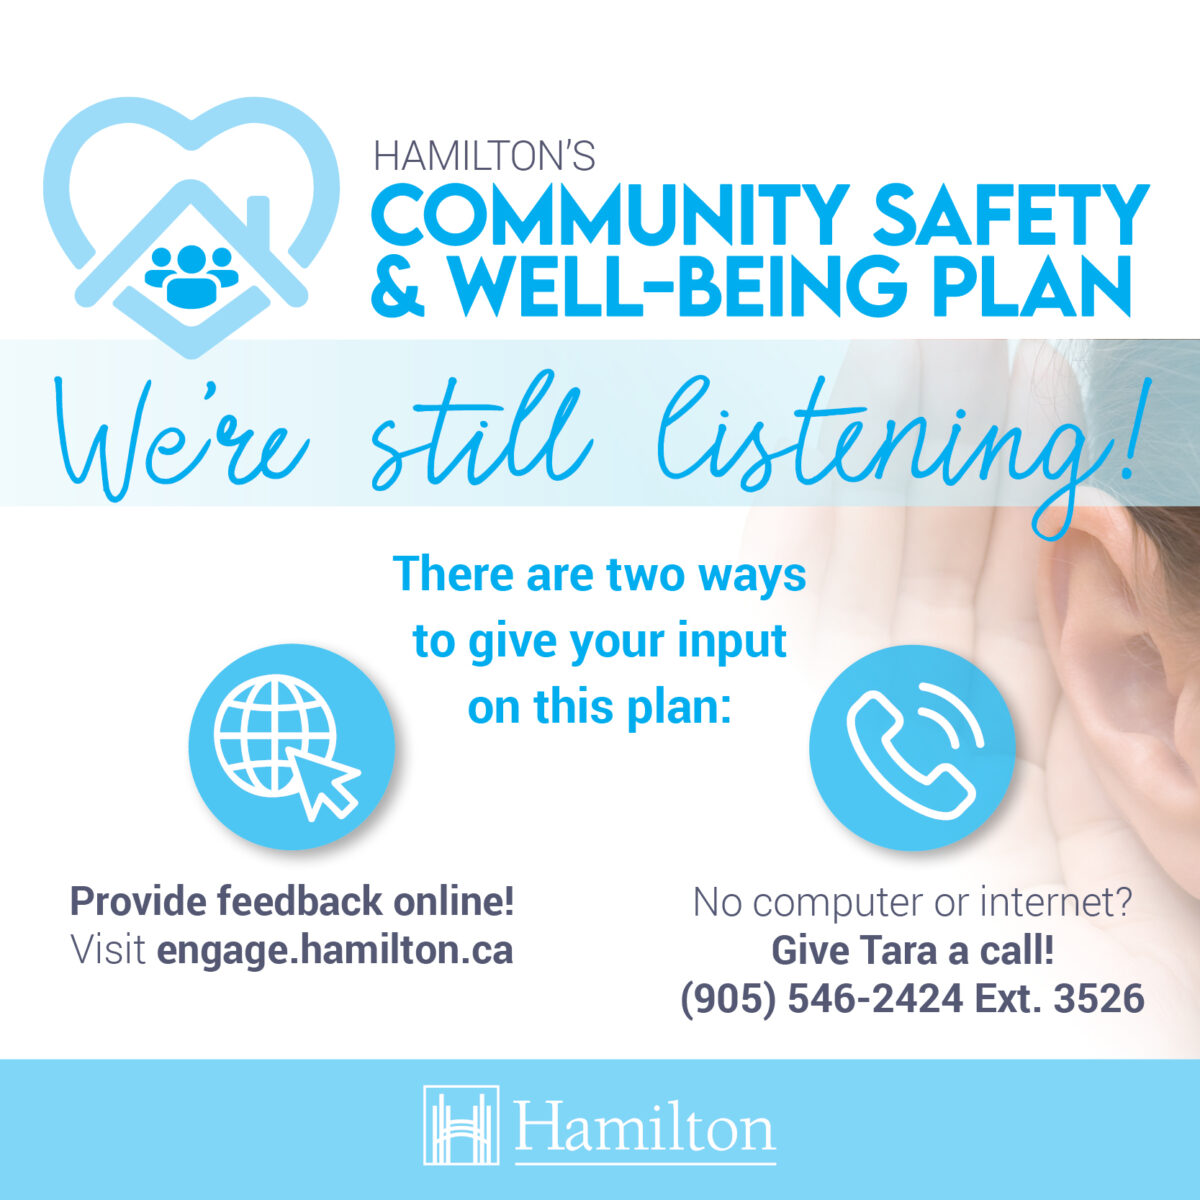 Have your say in the development of a Community Safety and Well-Being Plan for Hamilton